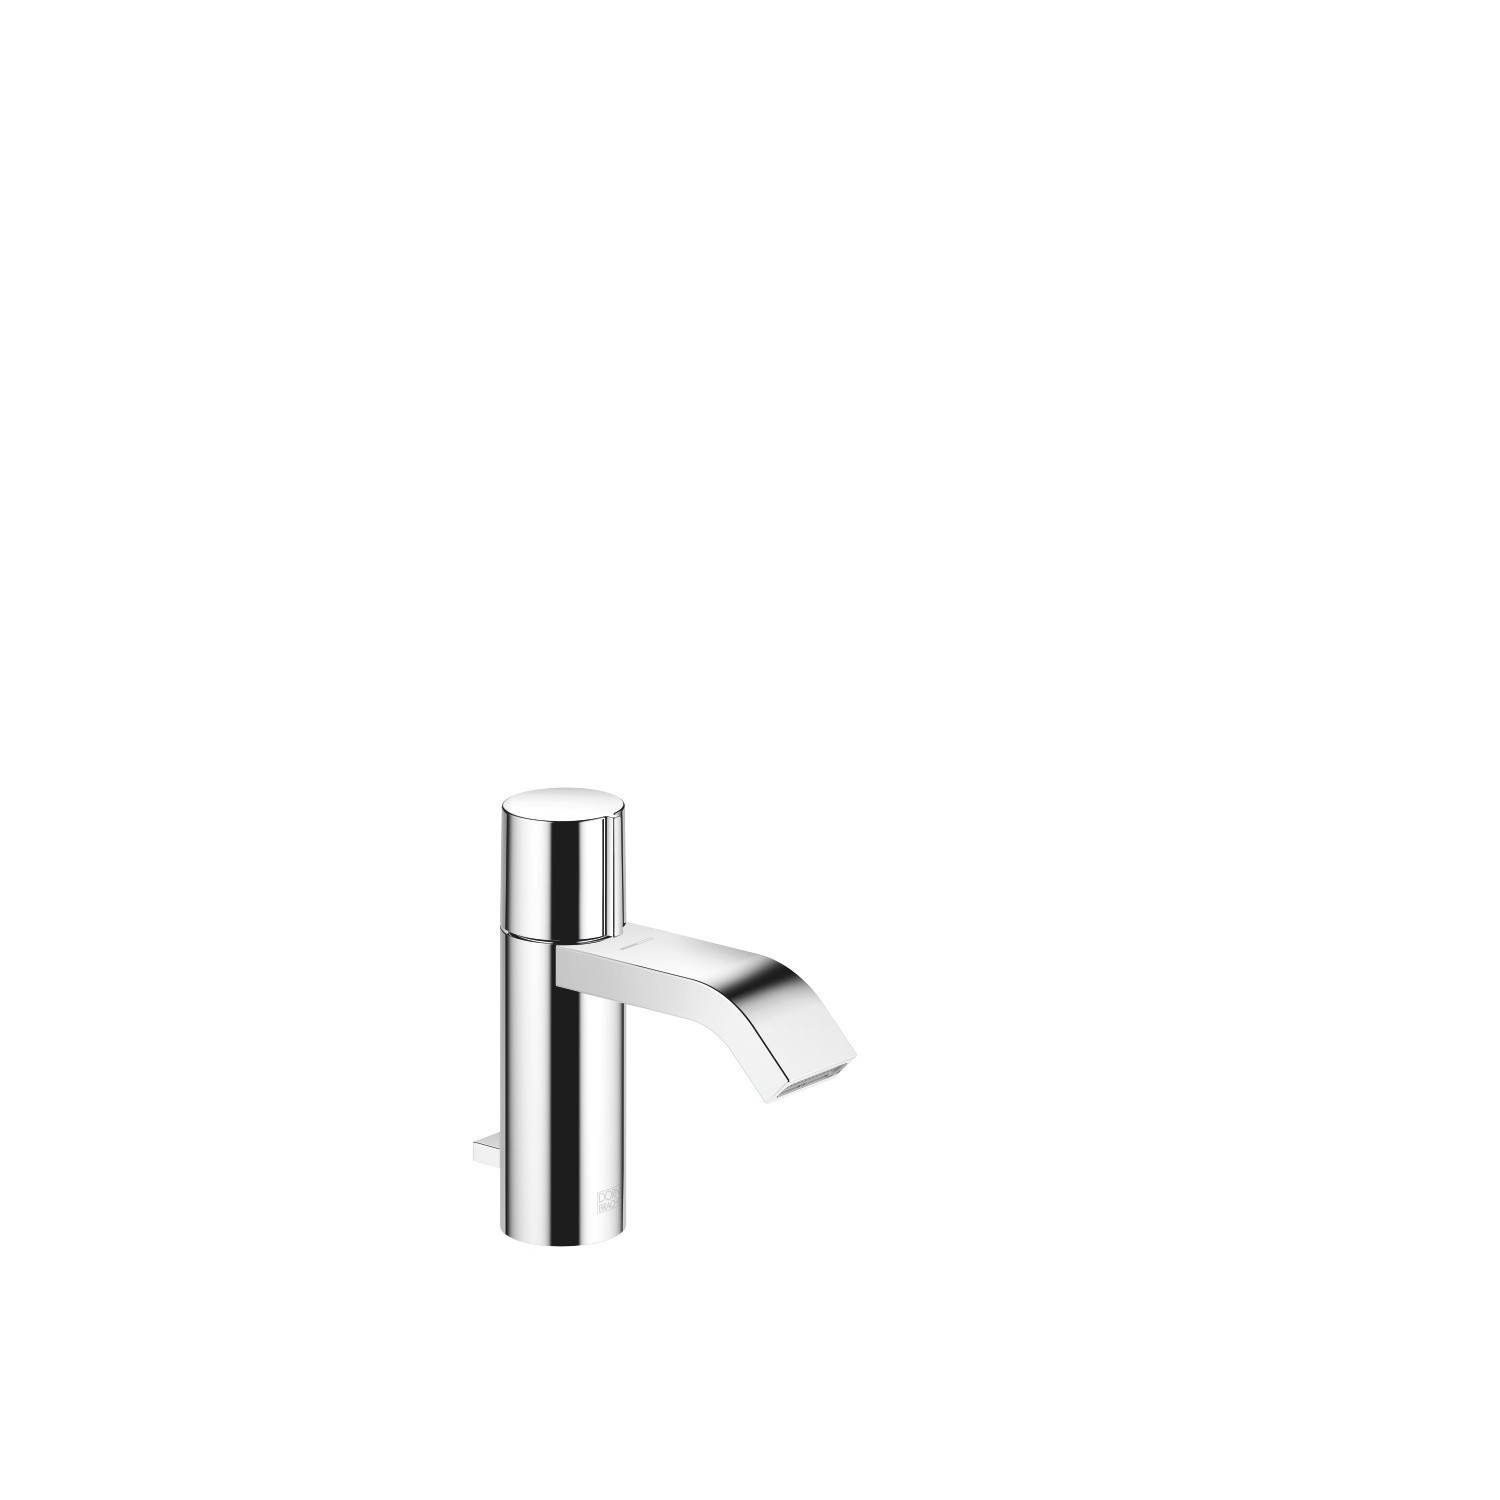 DORNBRACHT 33507670-0010 IMO 5 7/8 INCH SINGLE HOLE DECK MOUNT LAVATORY MIXER WITH DRAIN AND KNOB HANDLE